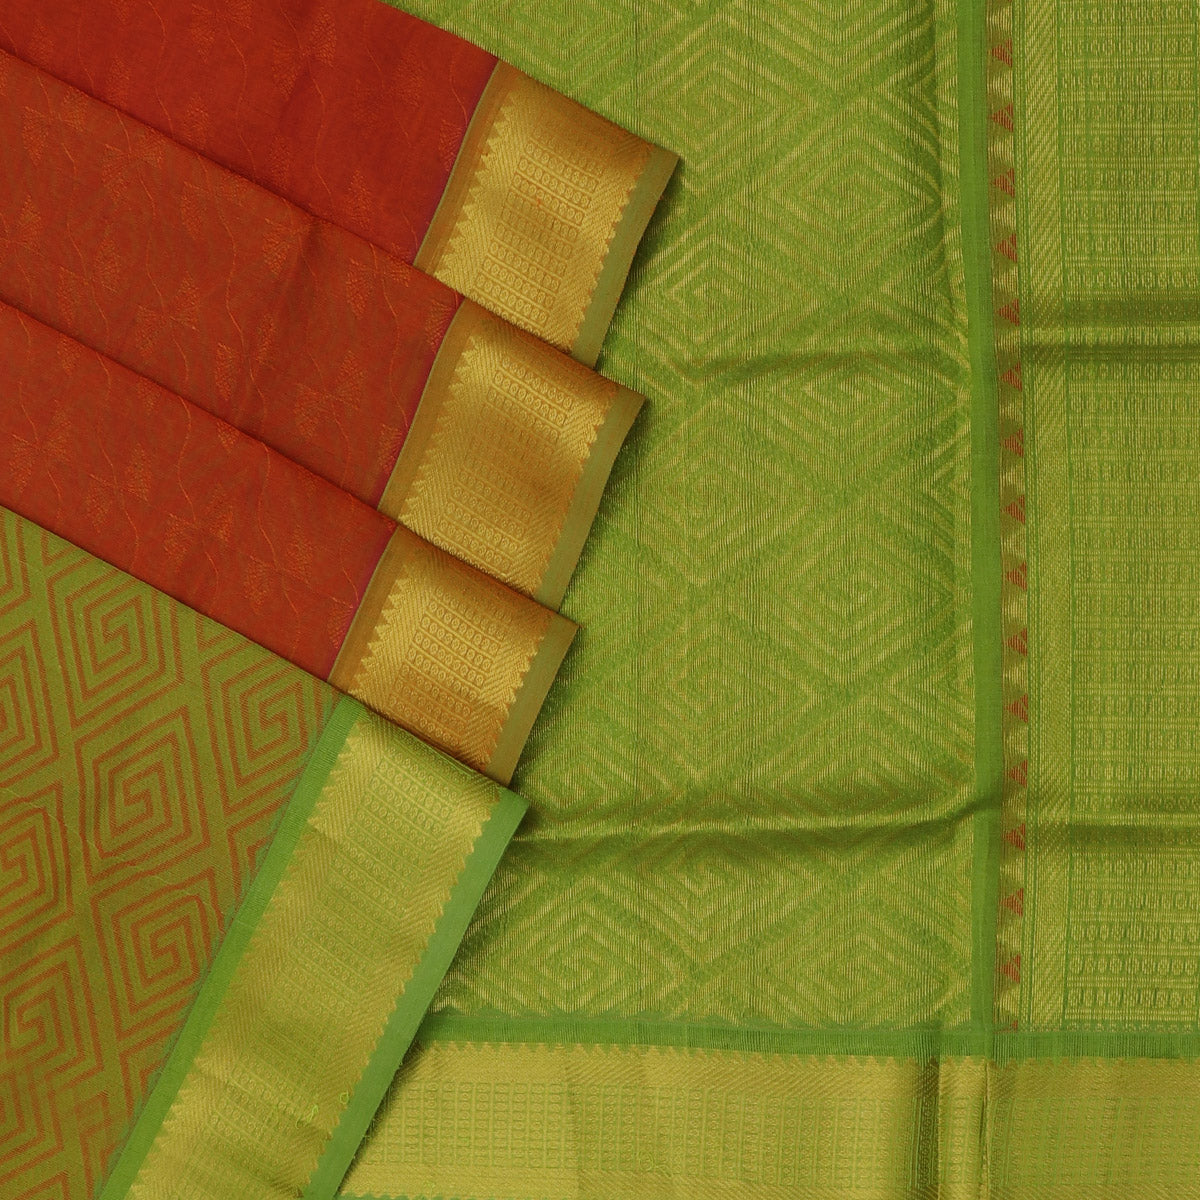 Silk Cotton Saree - Orange and Green with Bavanji zari border partly